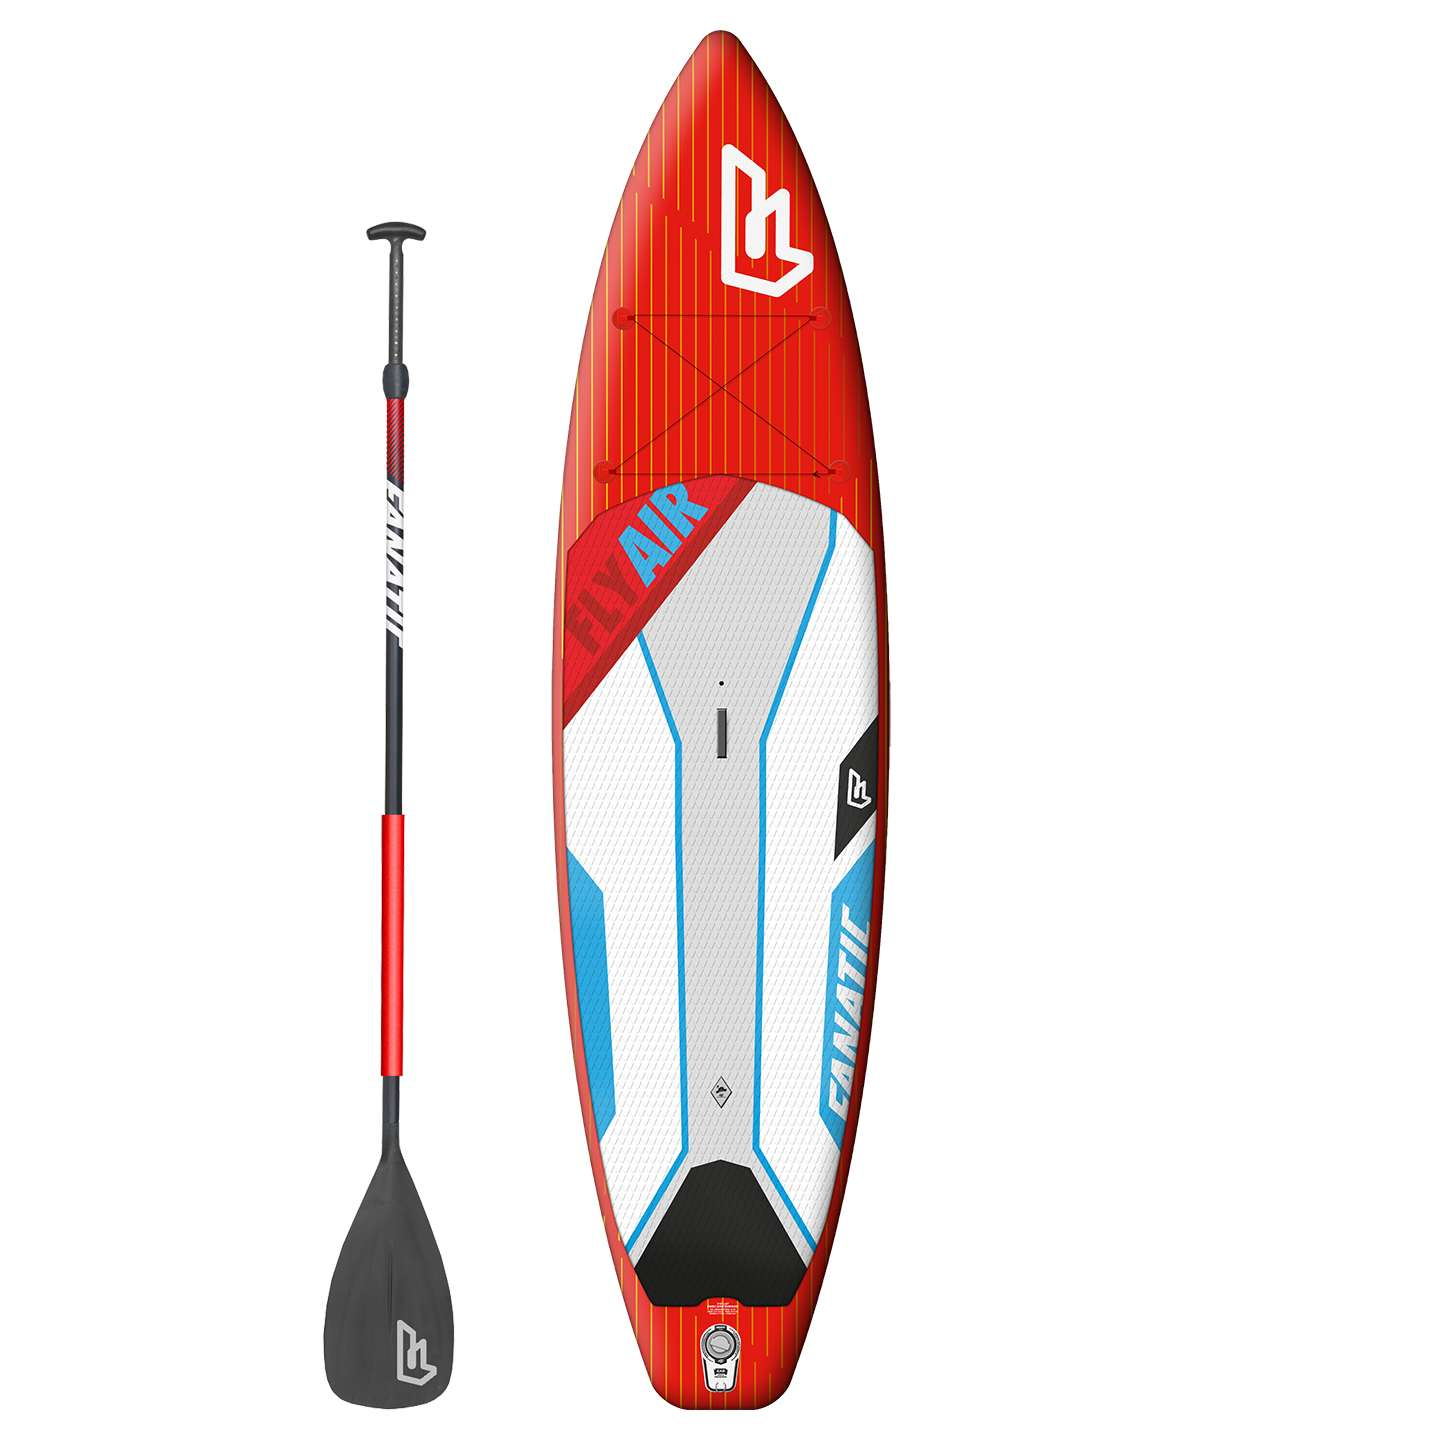 Fanatic Fly Air Premium Touring 110 Inflatable SUP Board